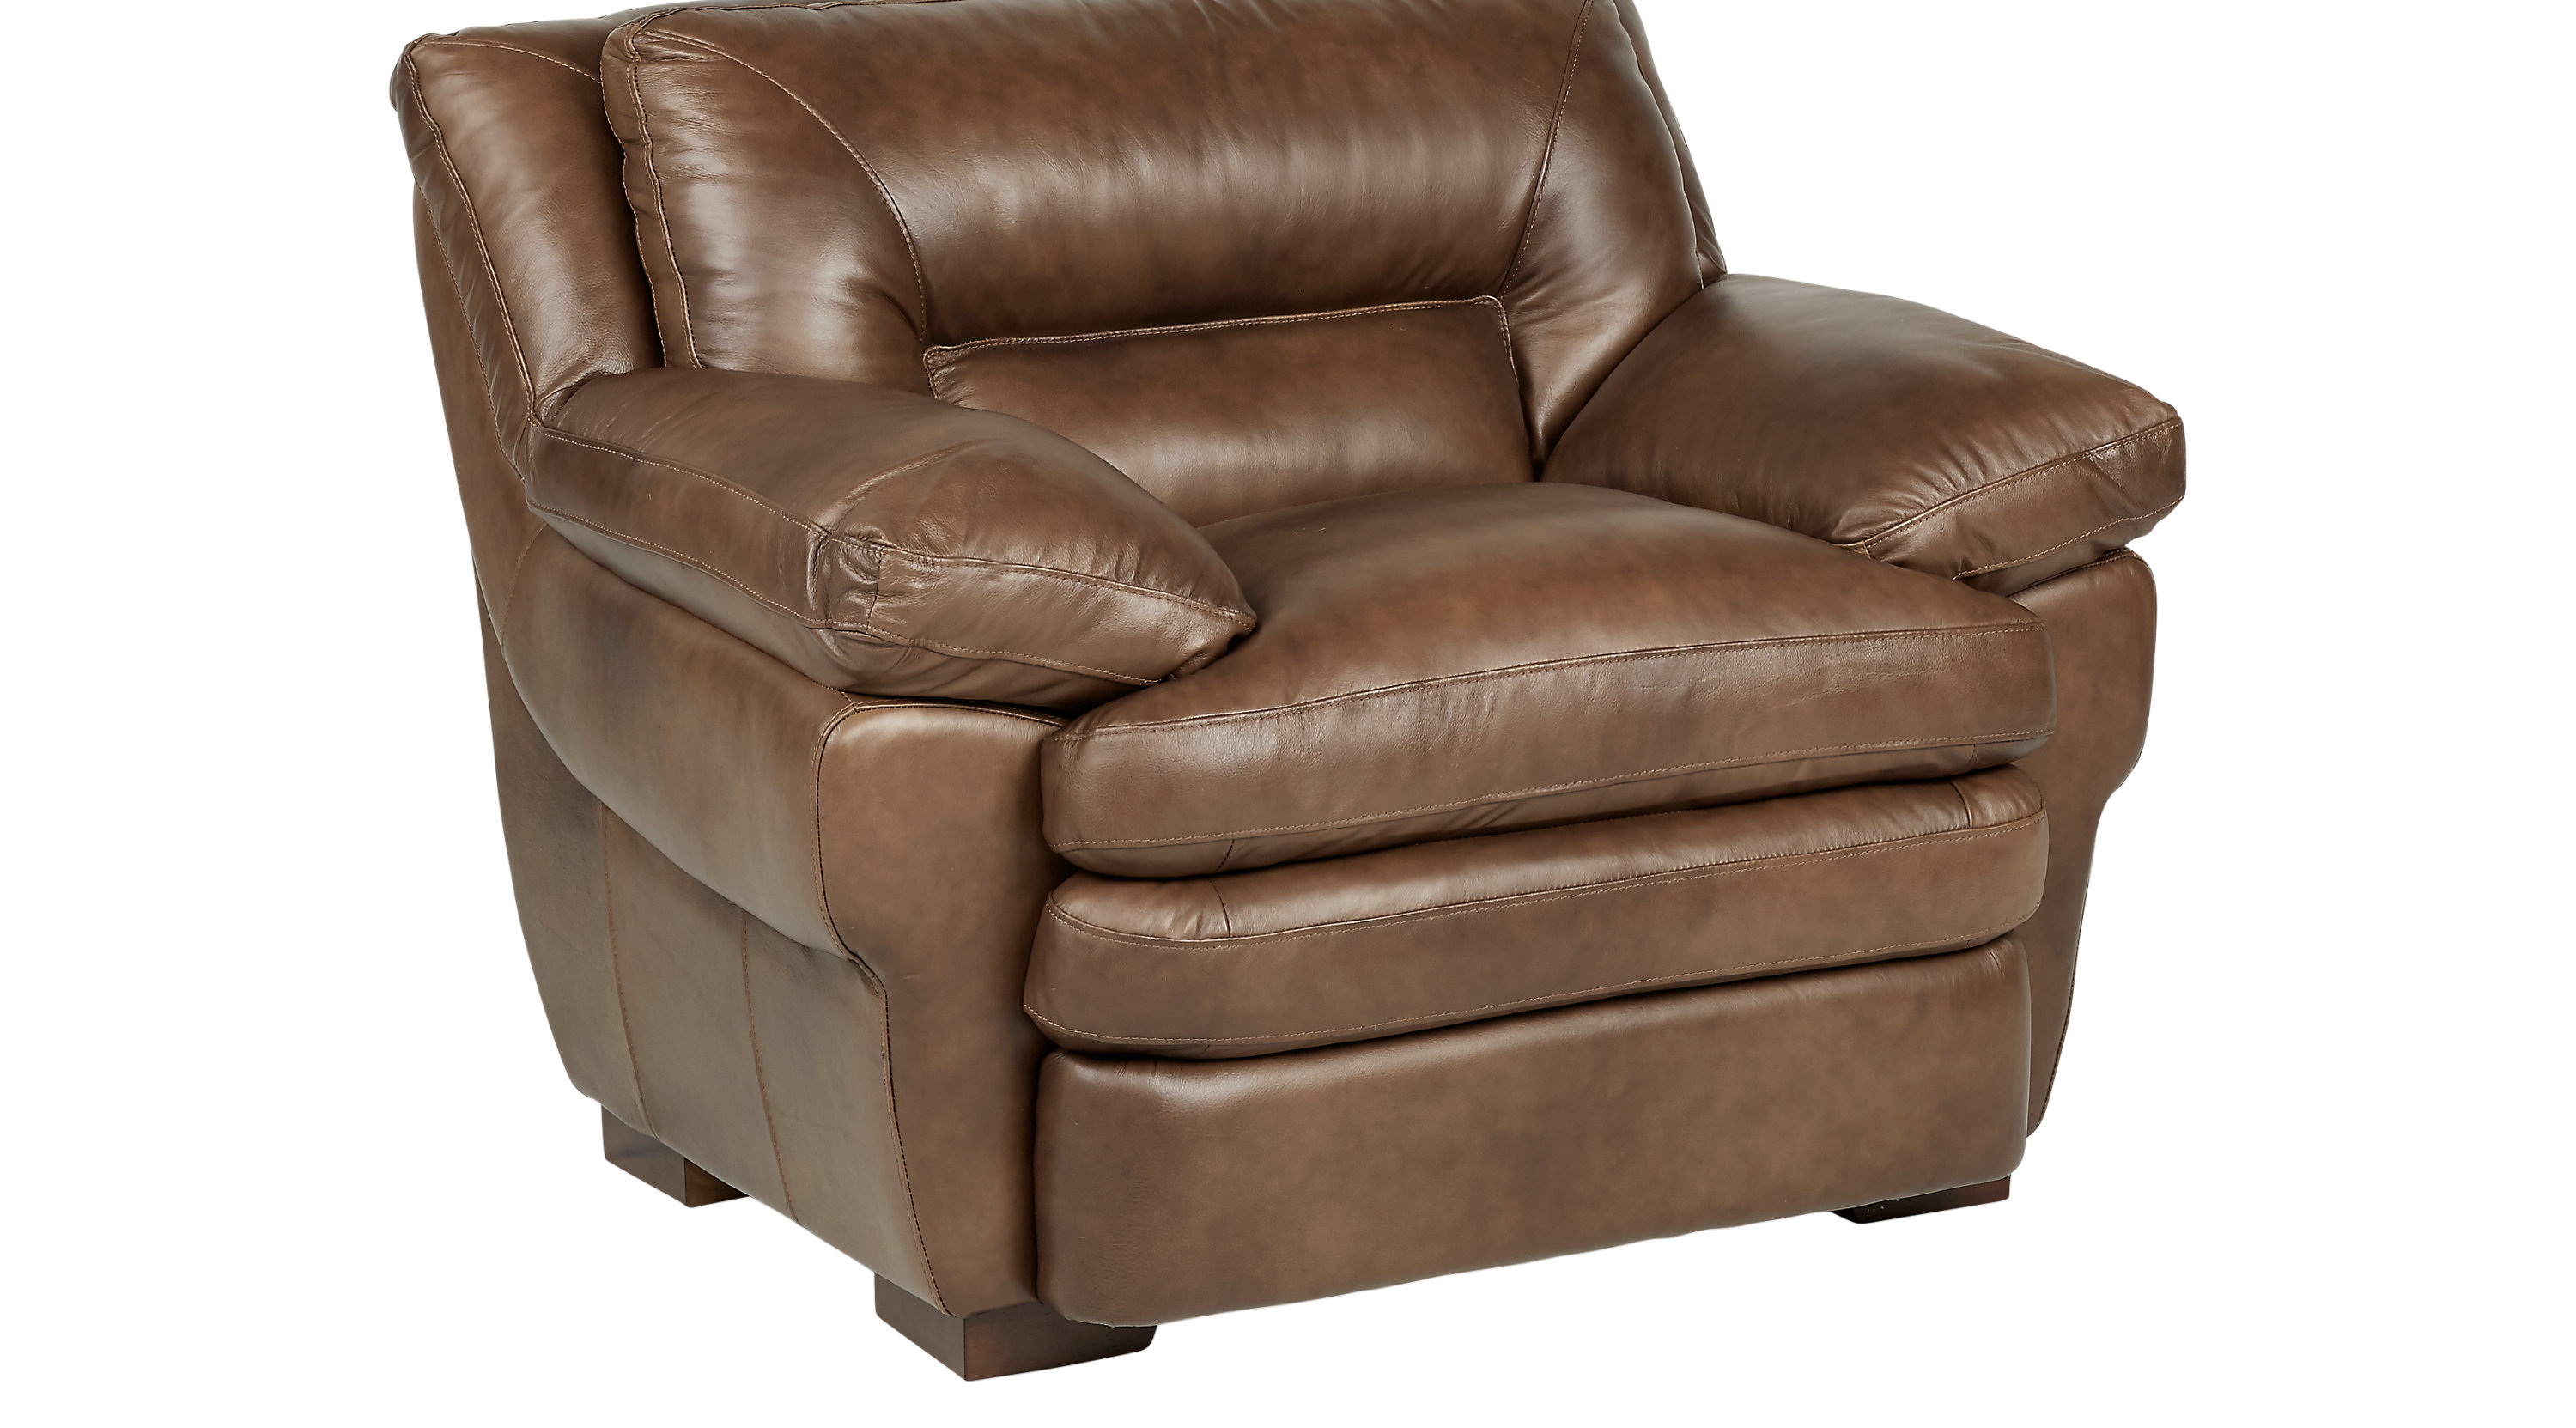 Aventino Tobacco Leather Chair